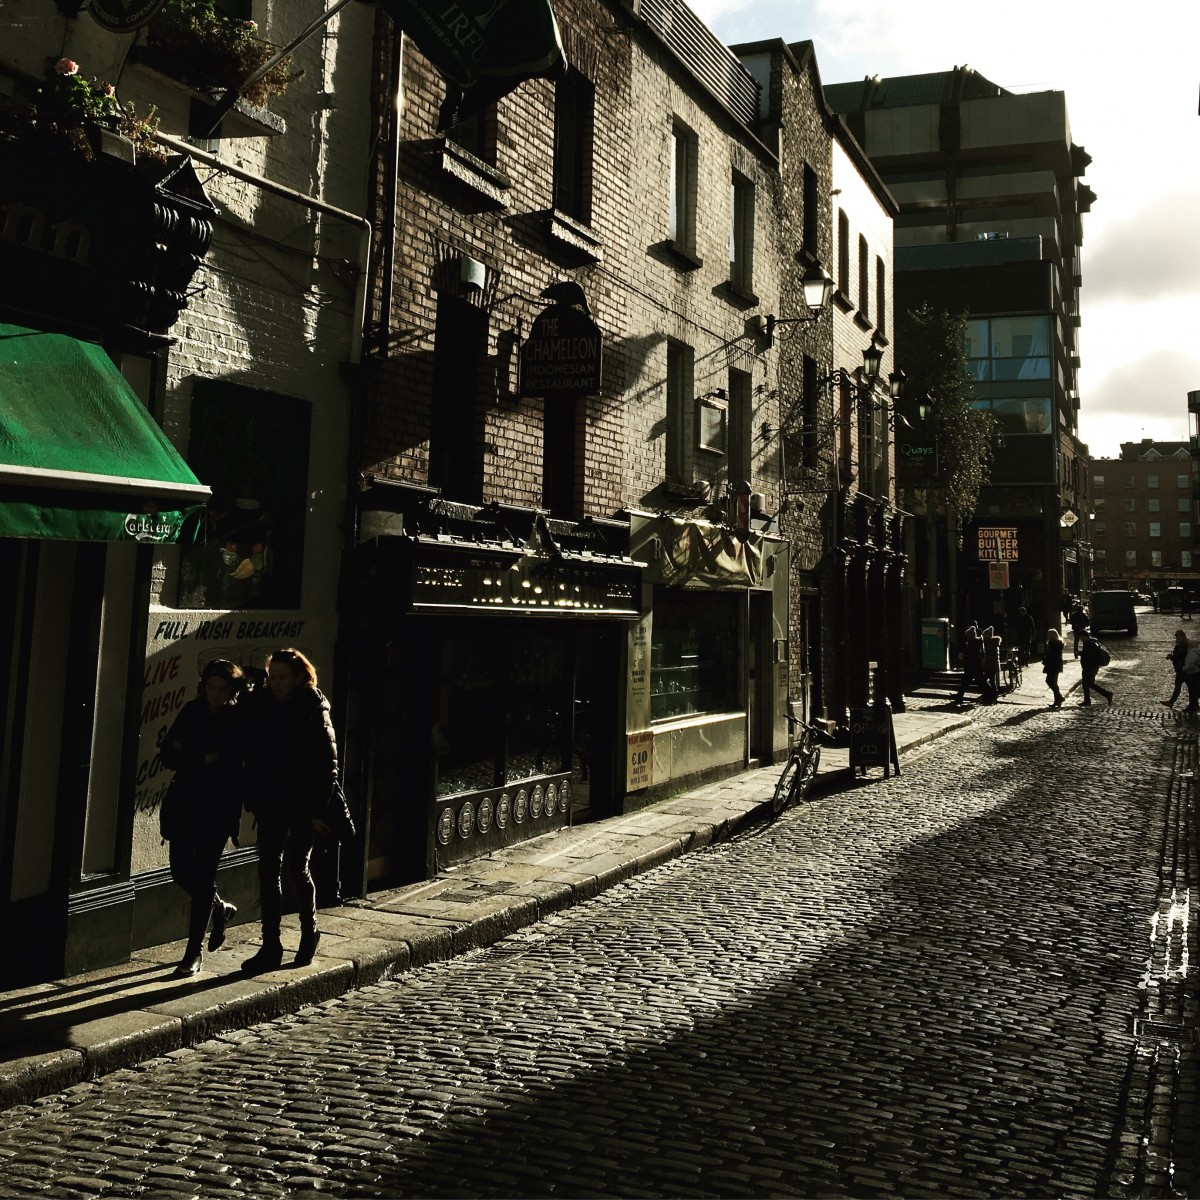 A street in Dublin Ireland